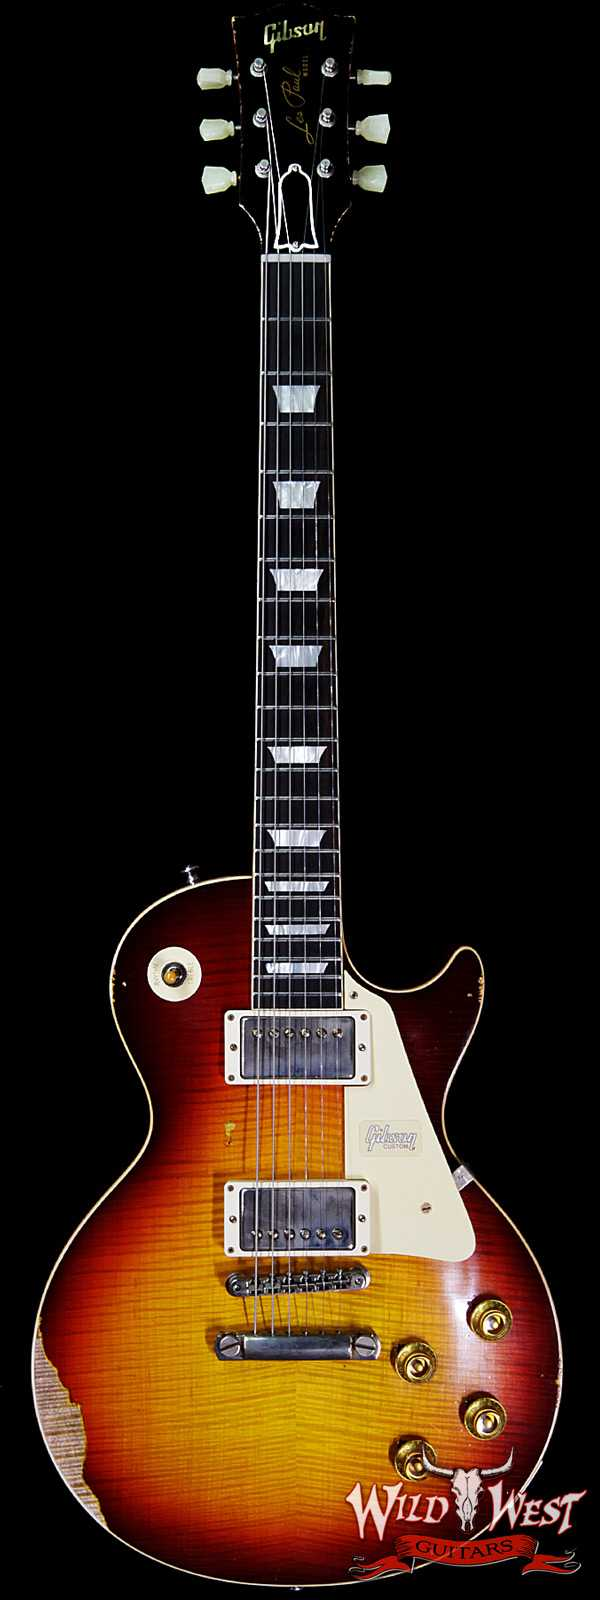 Gibson Custom Shop Historic 1959 Les Paul Heavy Aged Hand Selected Killer Top Brazilian Rosewood Board Vintage Cherry 7.95 LBS